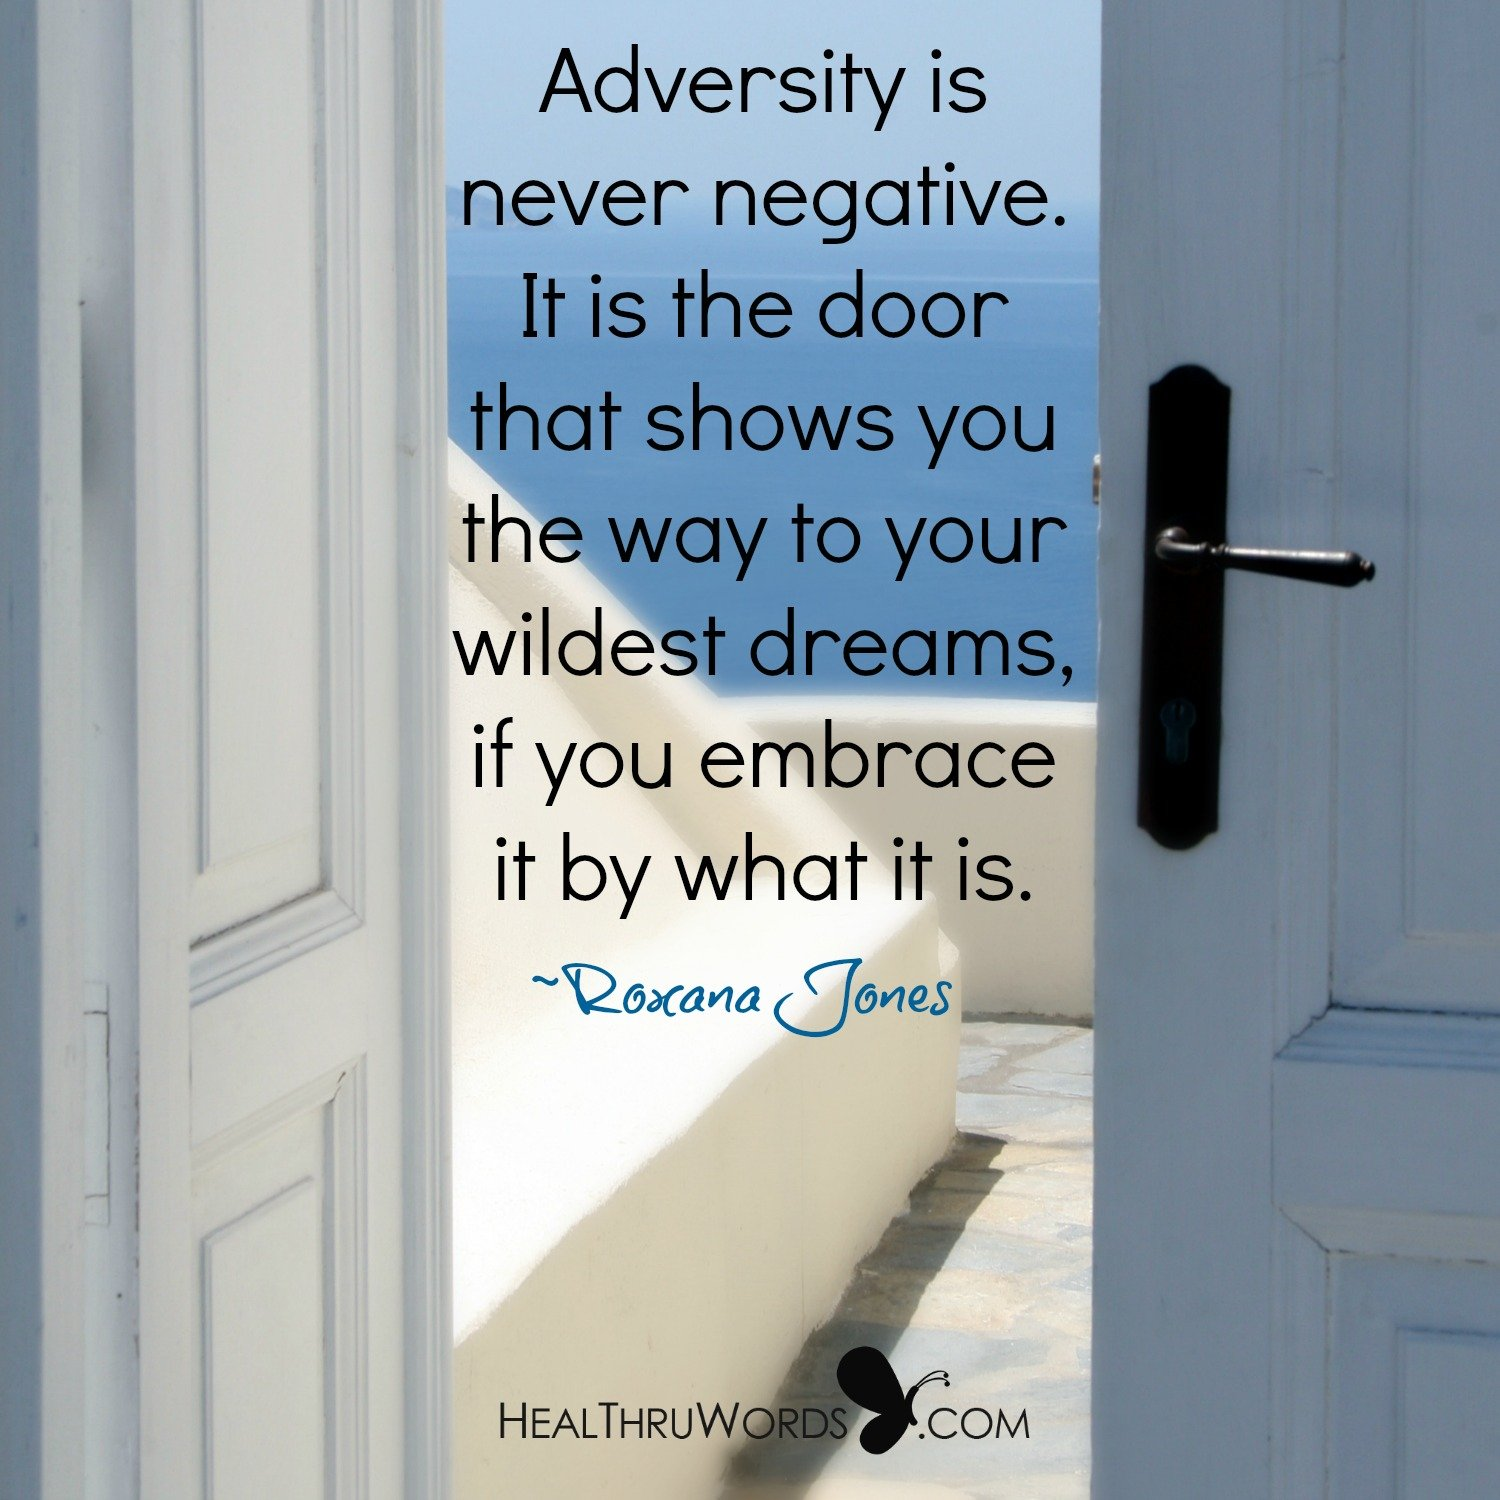 Inspirational Image: The Door to your Dreams